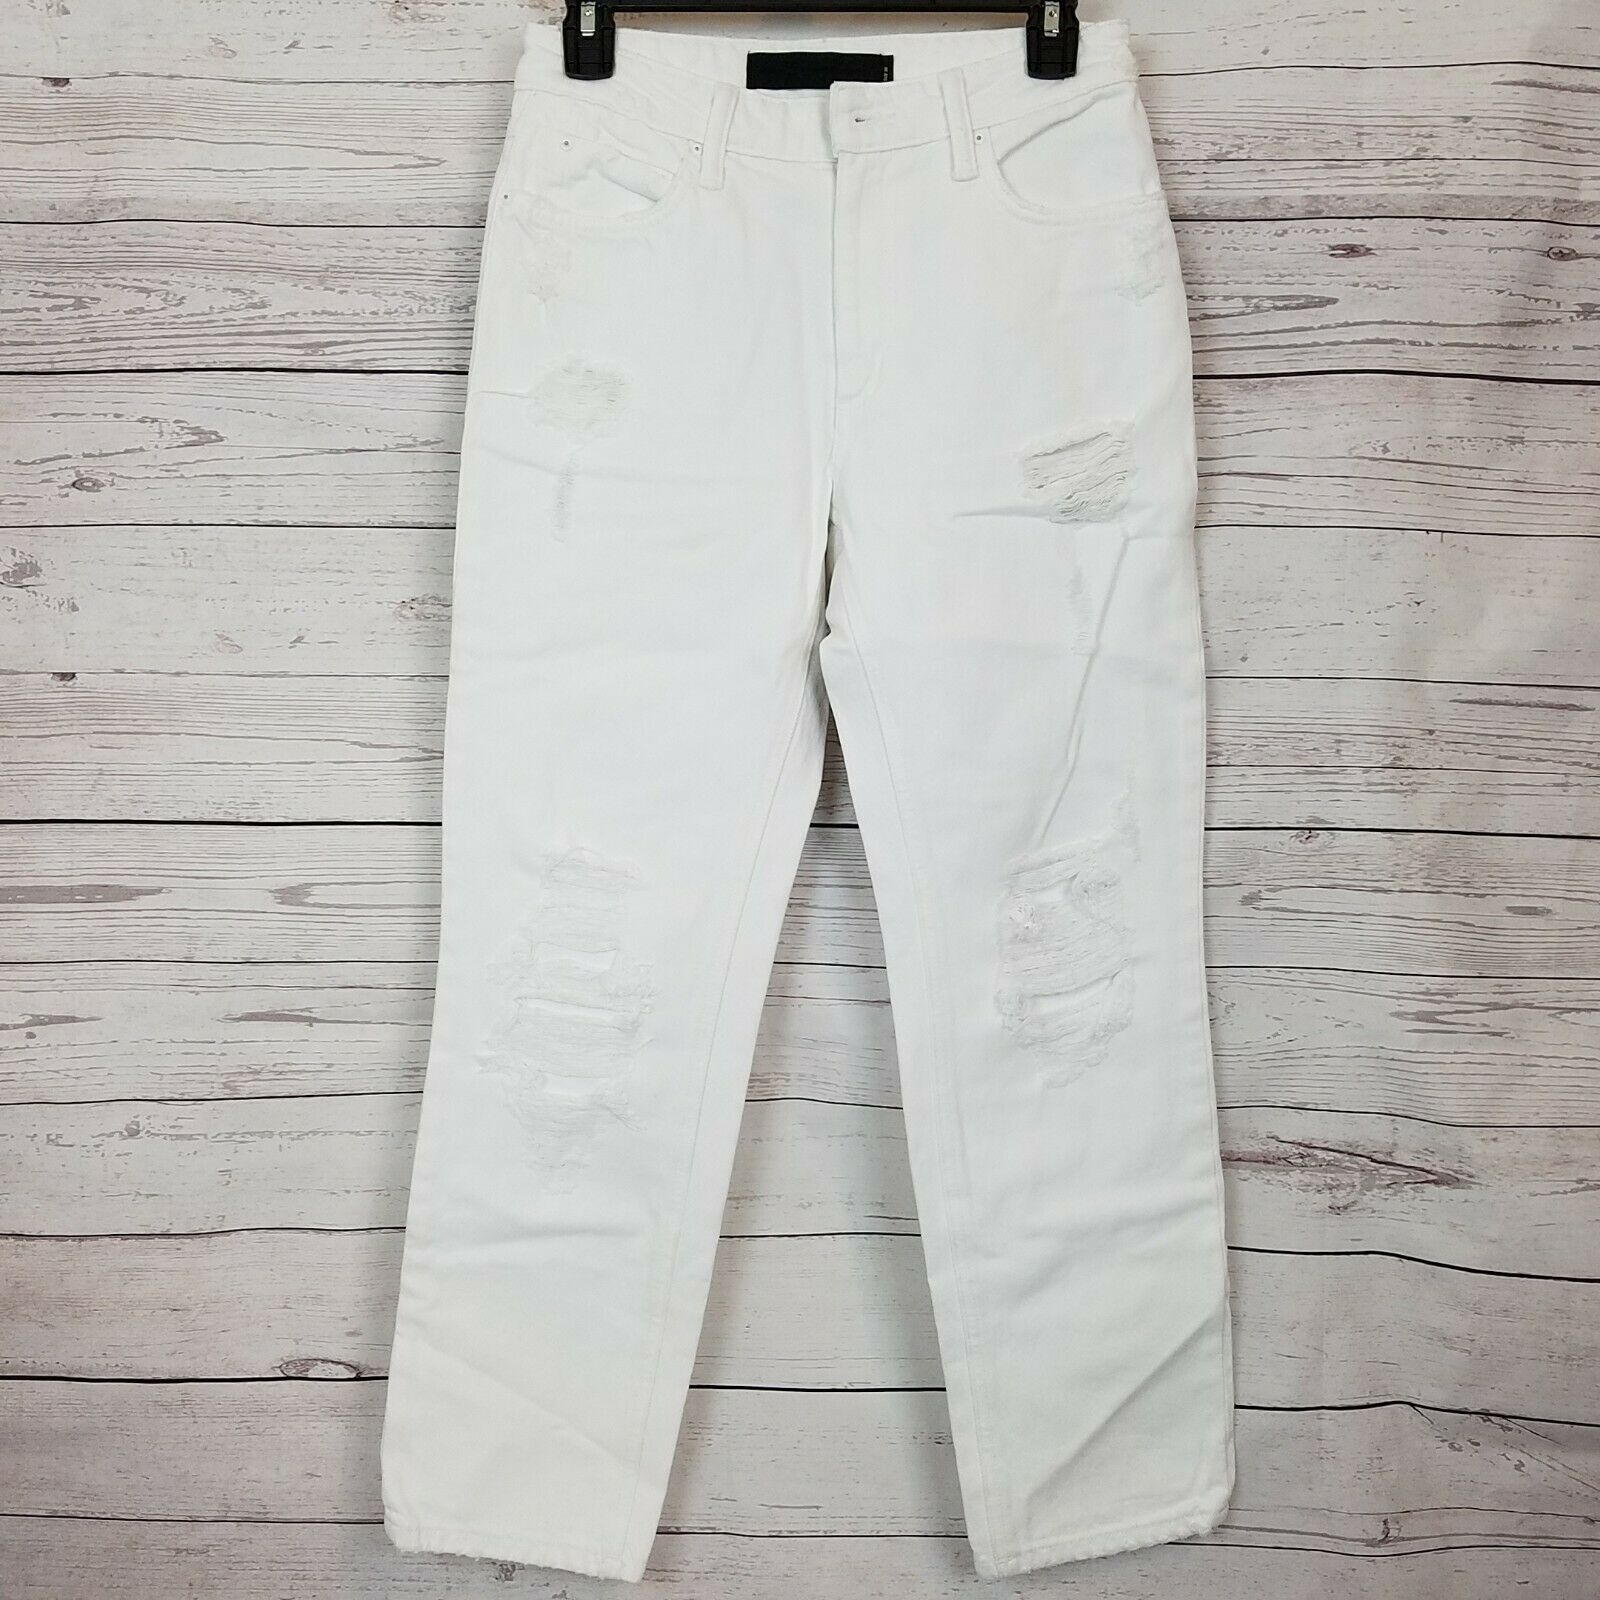 T by Alexander Wang Womens Cult White Destroyed Jeans Size 26 White NWD NWT  295